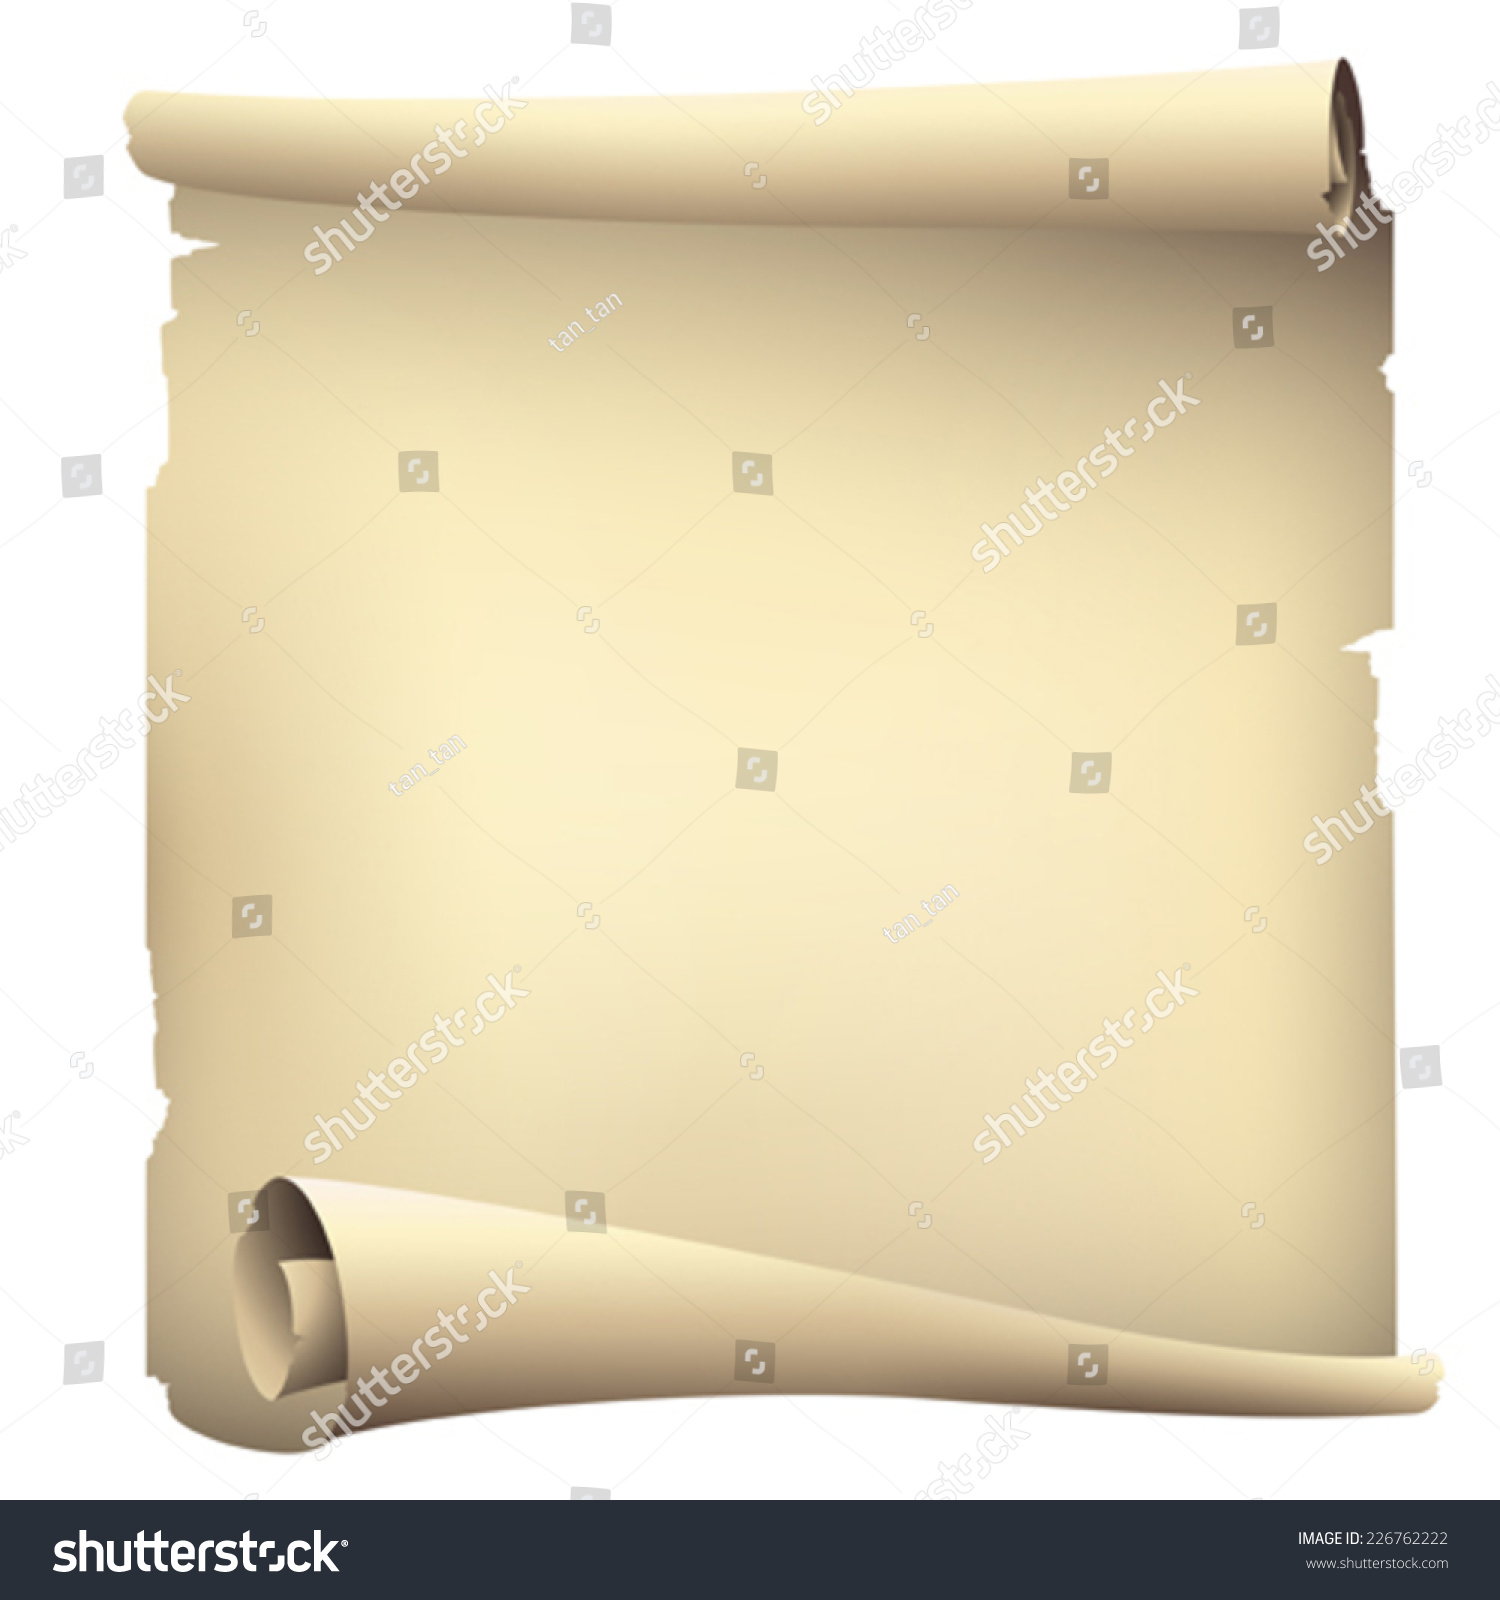 Old Paper Scroll Banner Vector Drawing Stock Vector (Royalty Free